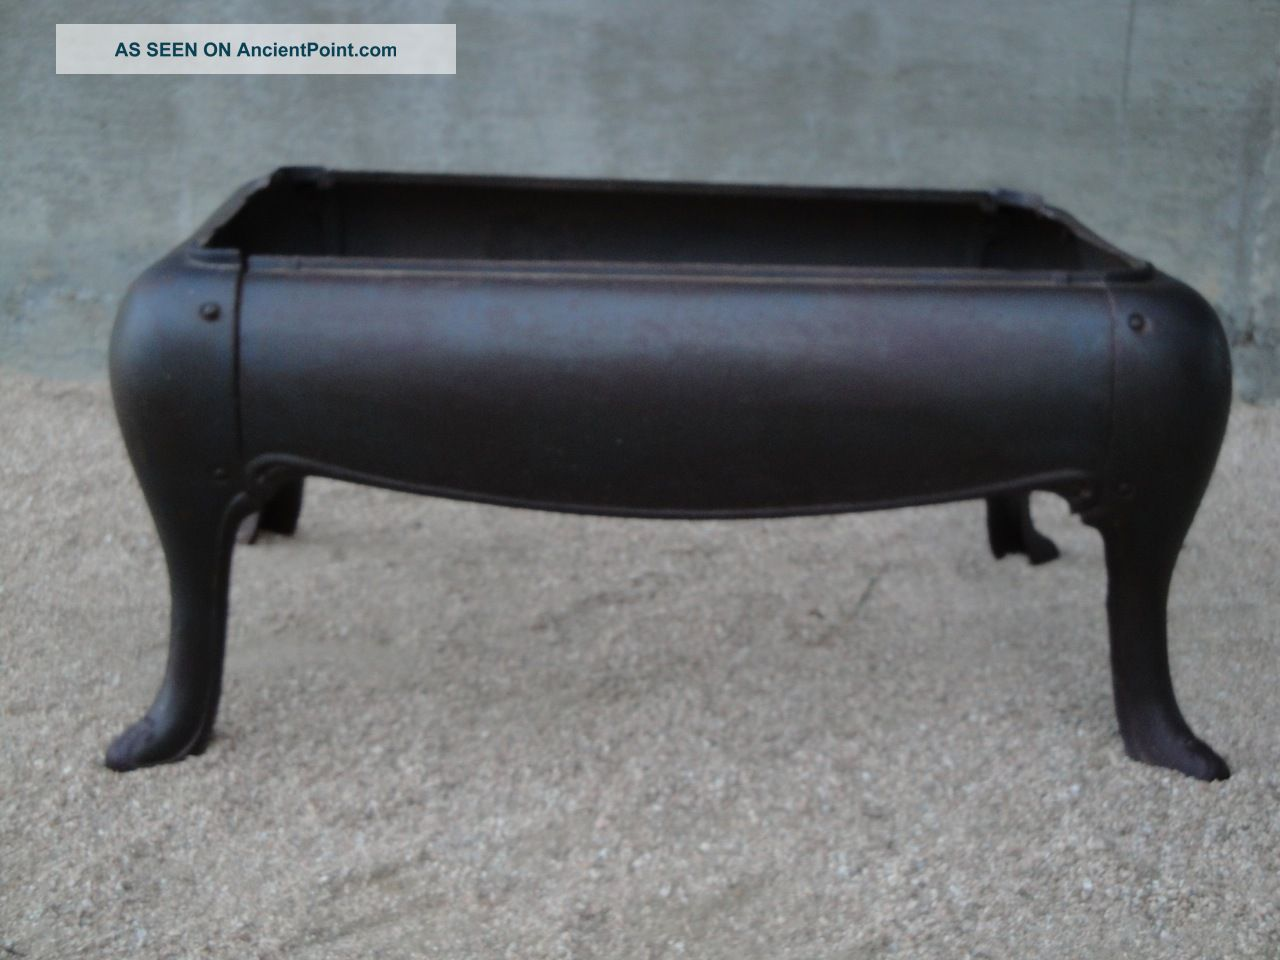 Antique Cast Iron Stove Base Bench Or Table 1800-1899 photo